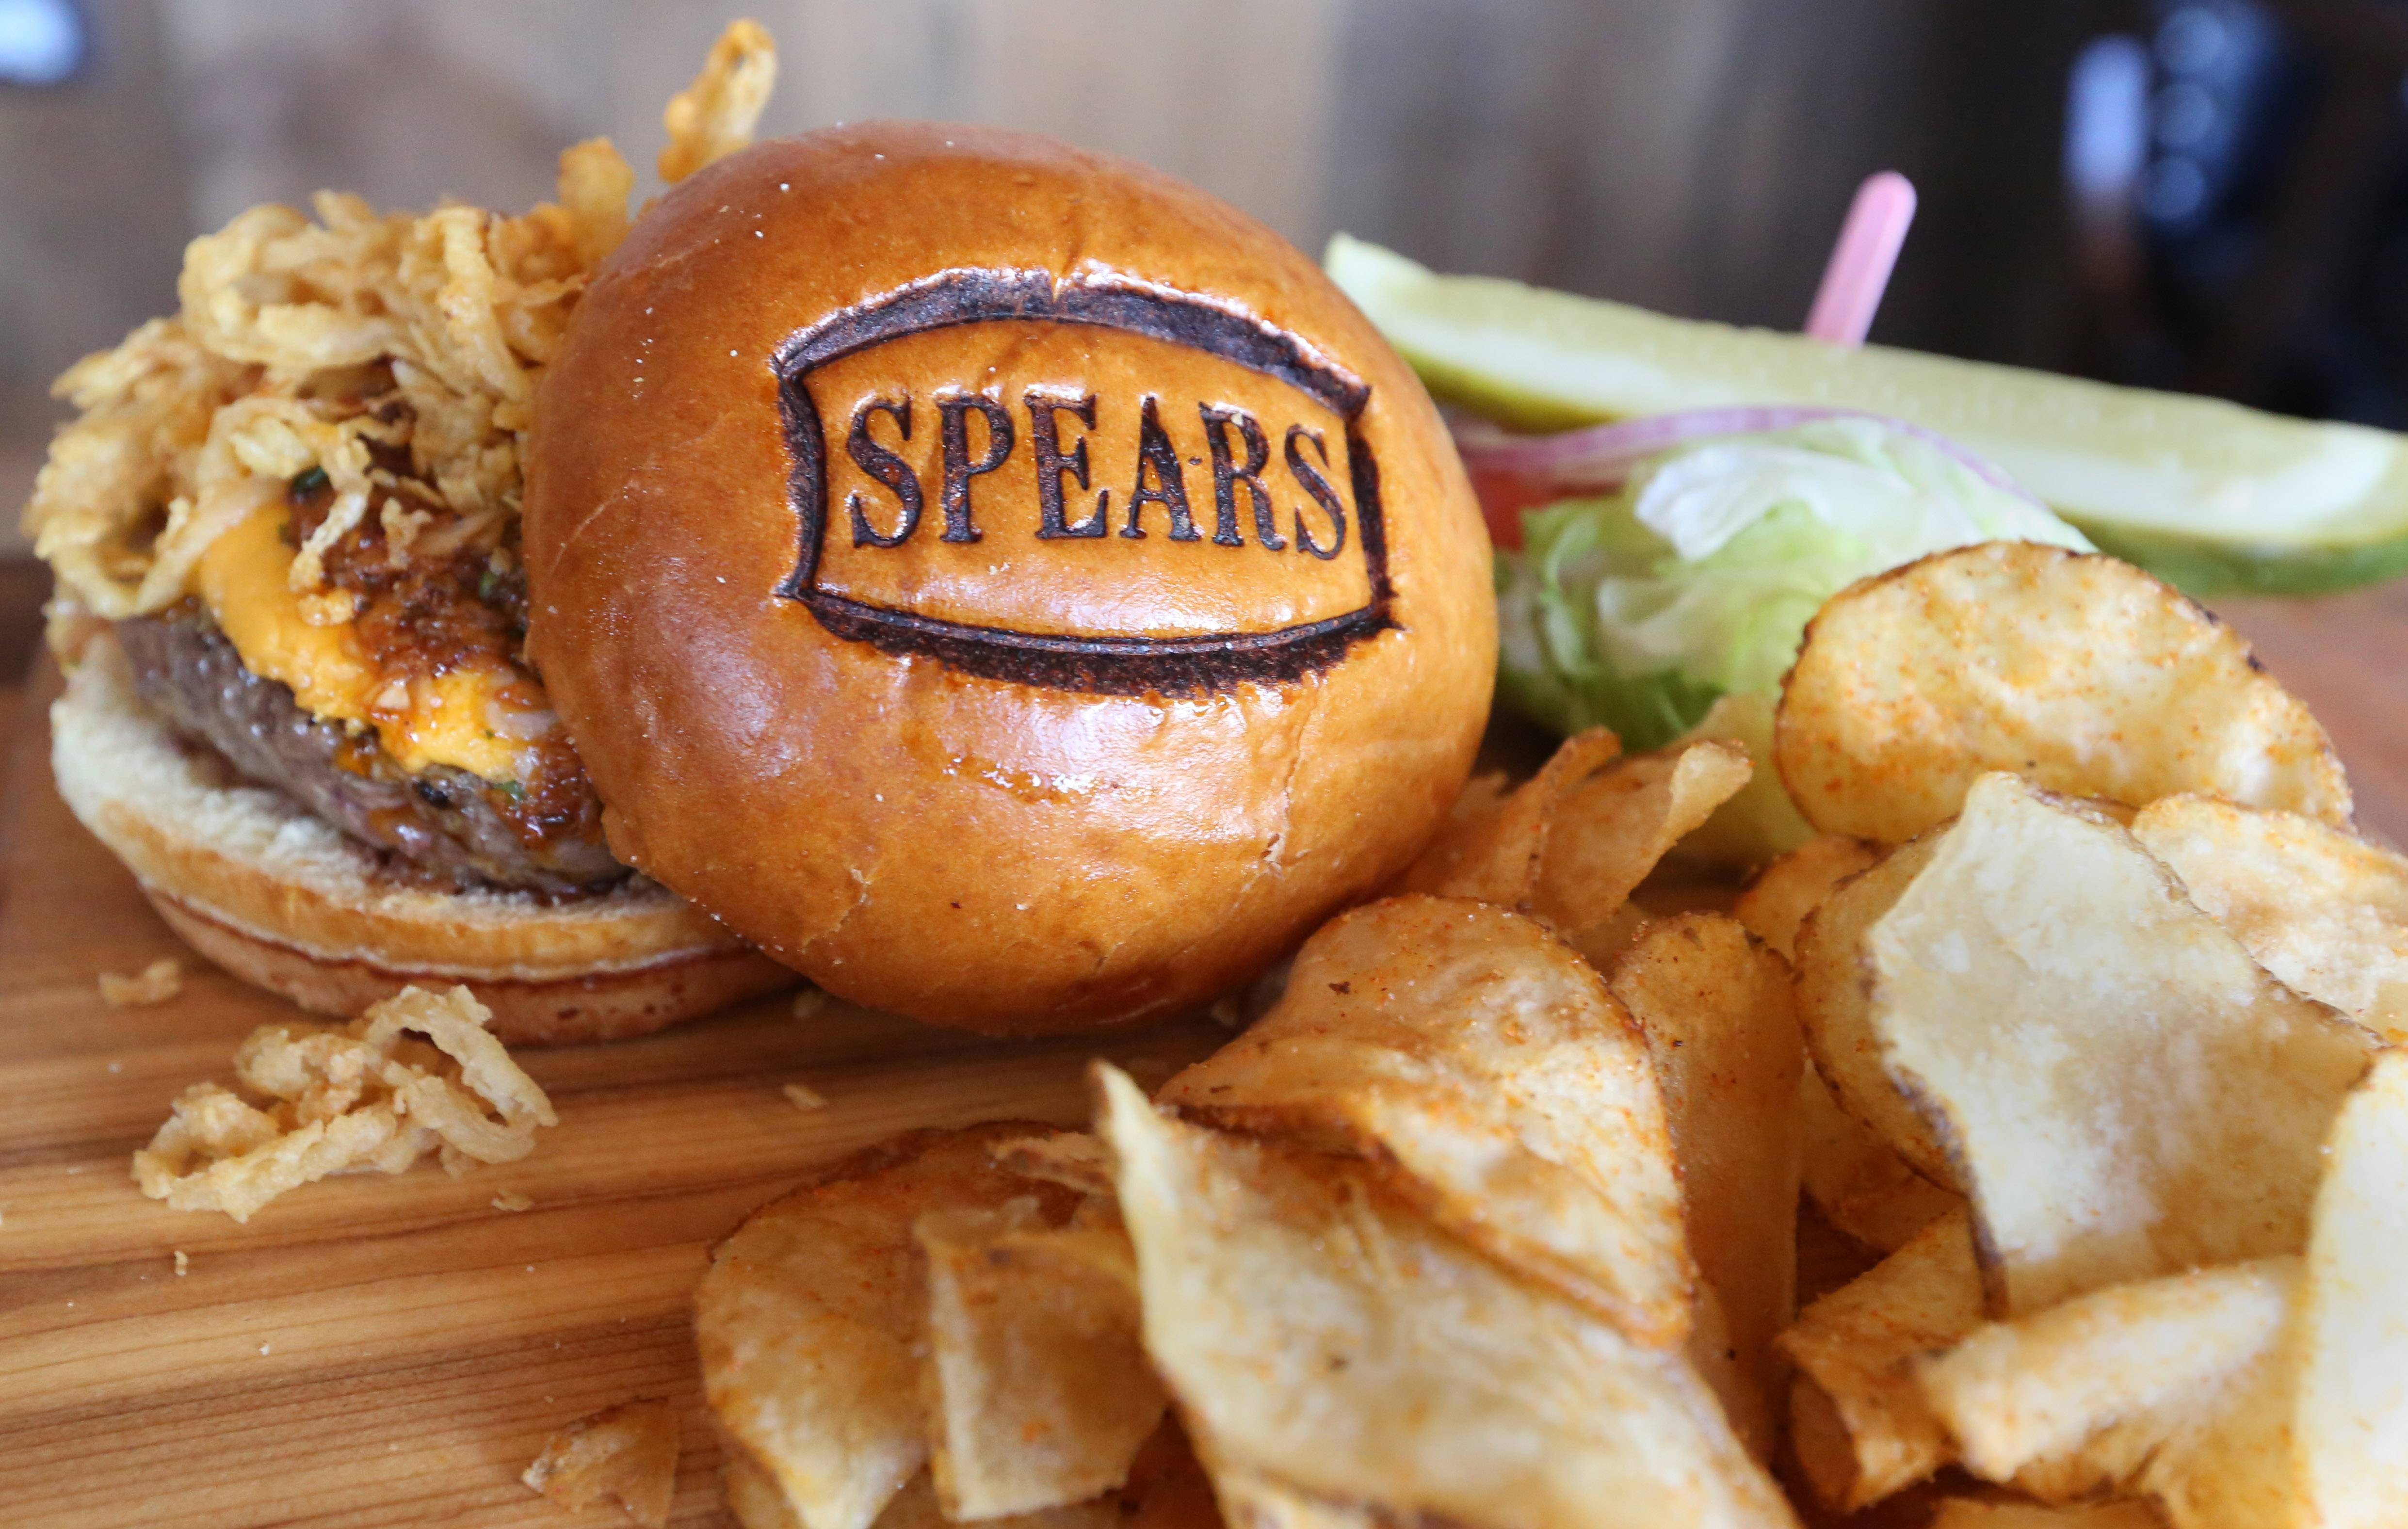 Spears's burgers, including the Hangover Burger, start with antibiotic- and growth-hormone-free, grass-fed beef.